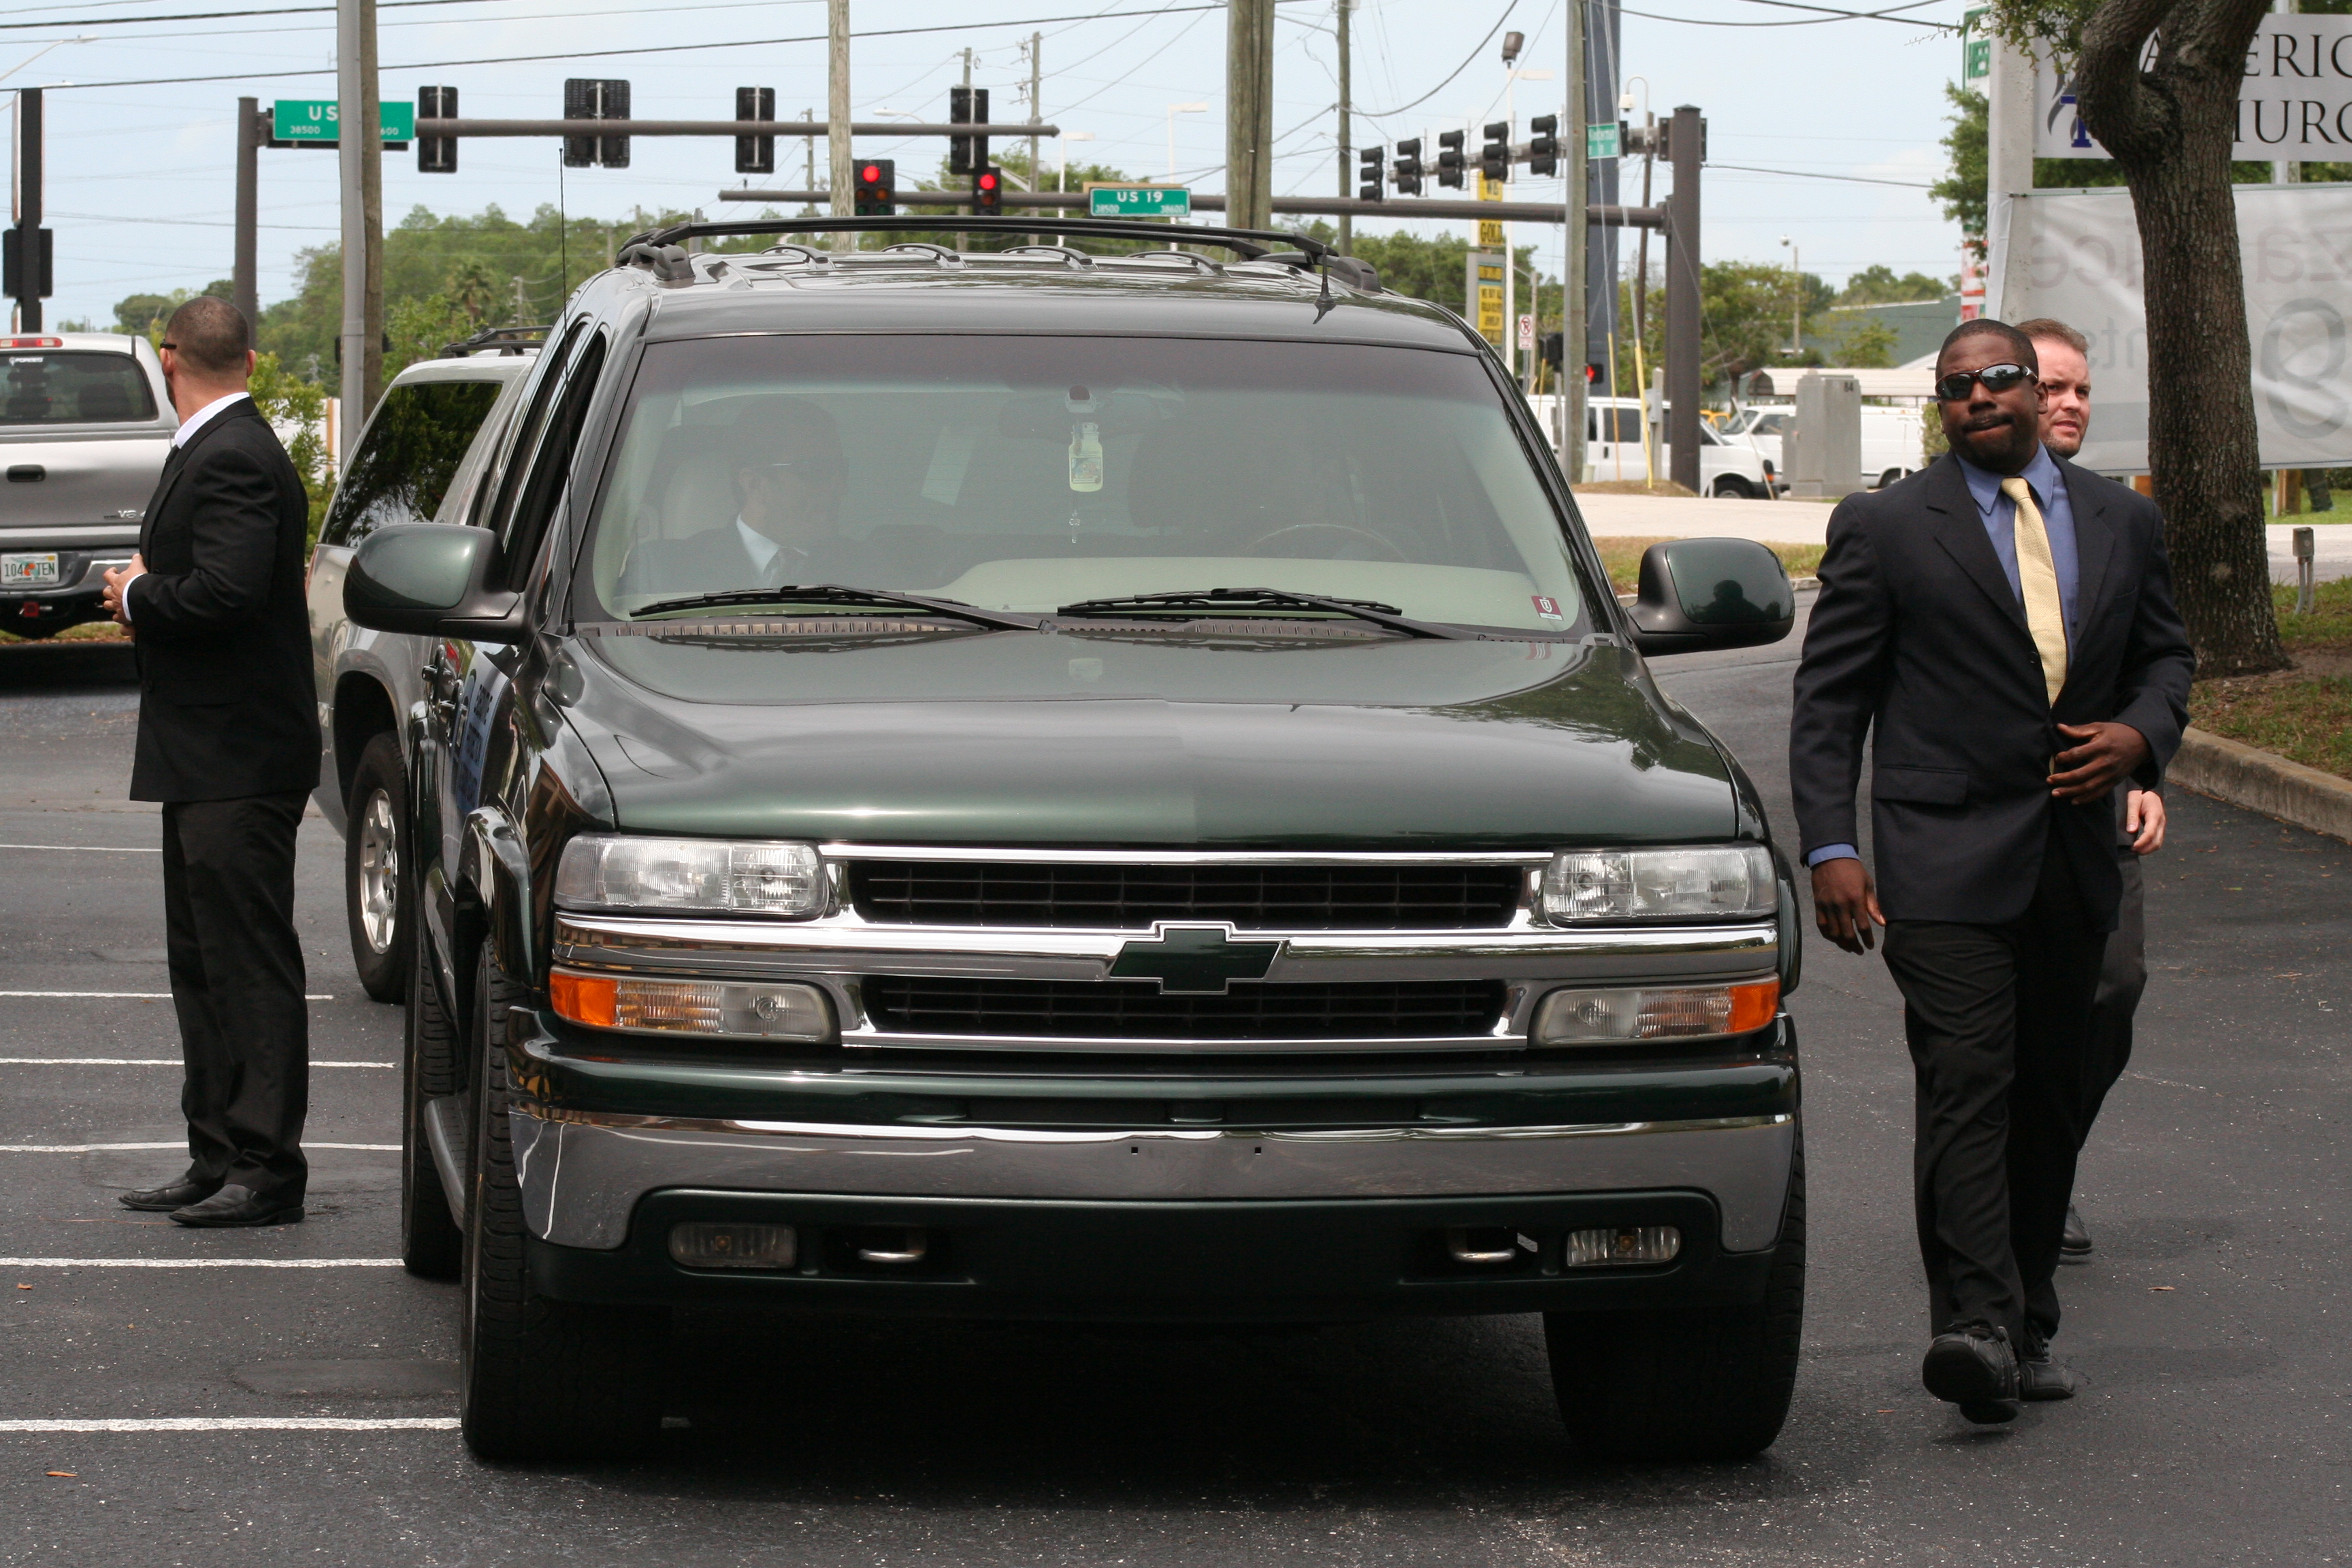 Vip Protection In Florida Tampa Orlando And More